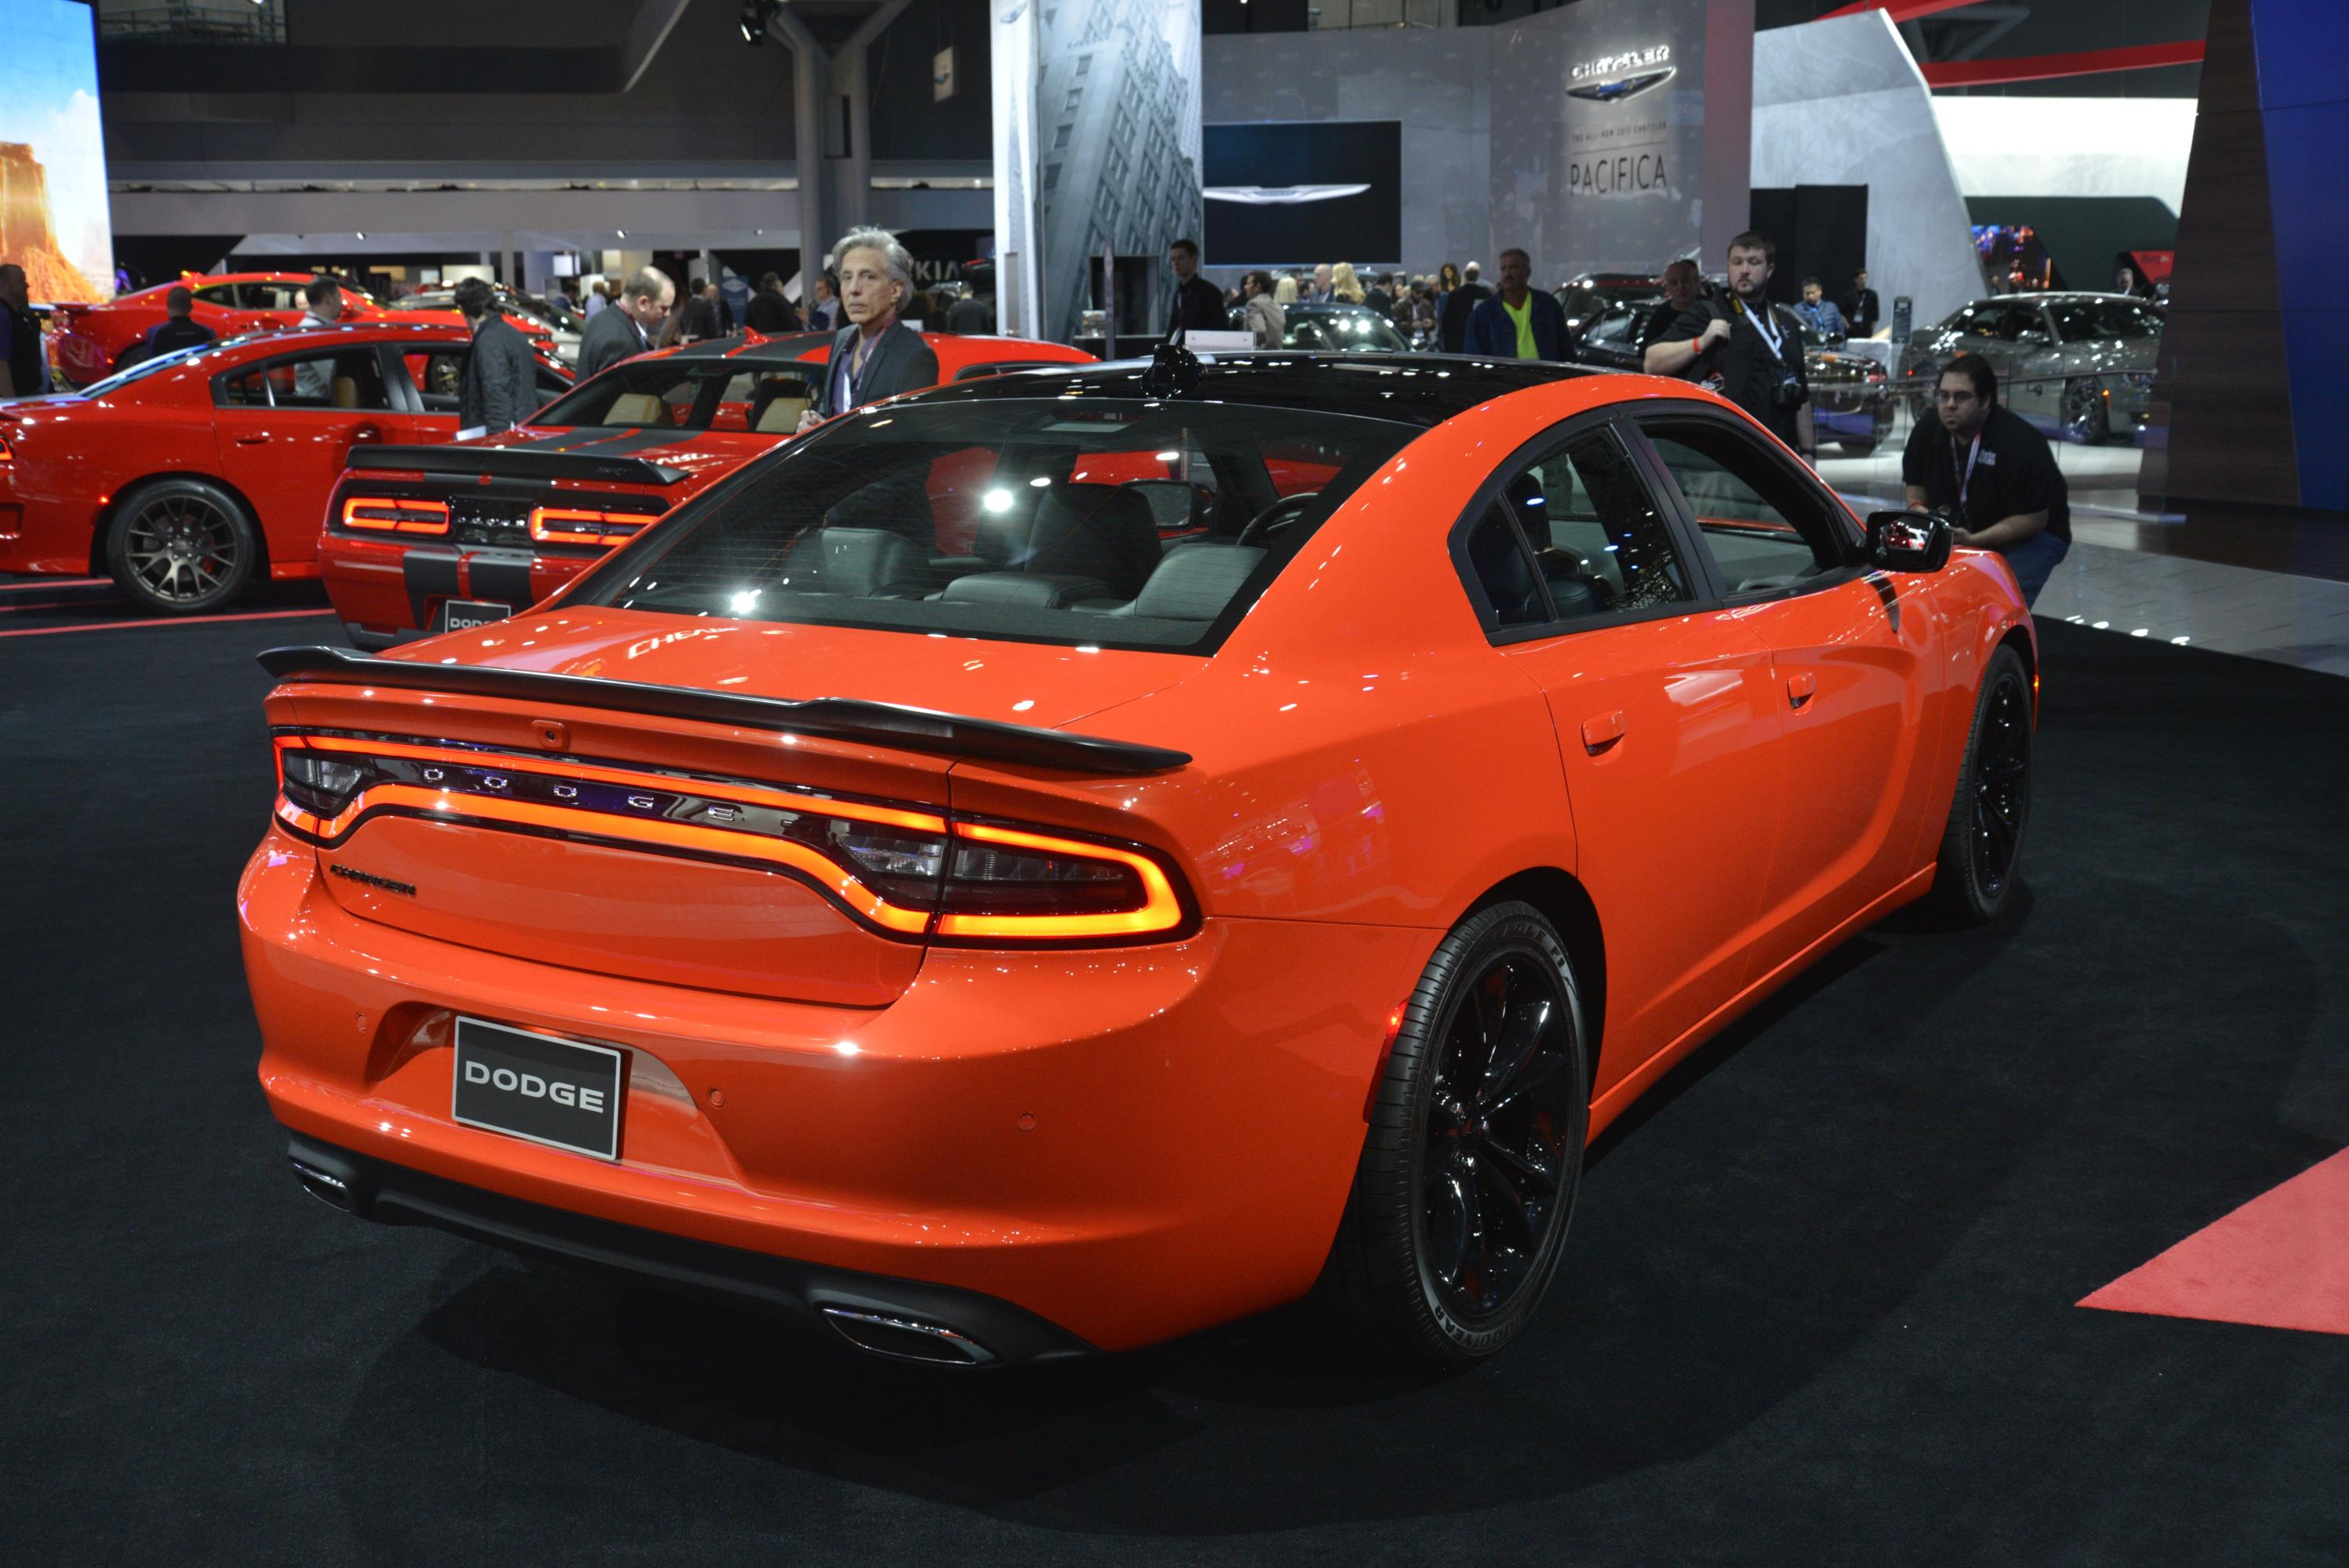 Go Mango Paint Is Now on Regular 2016 Dodge Charger and